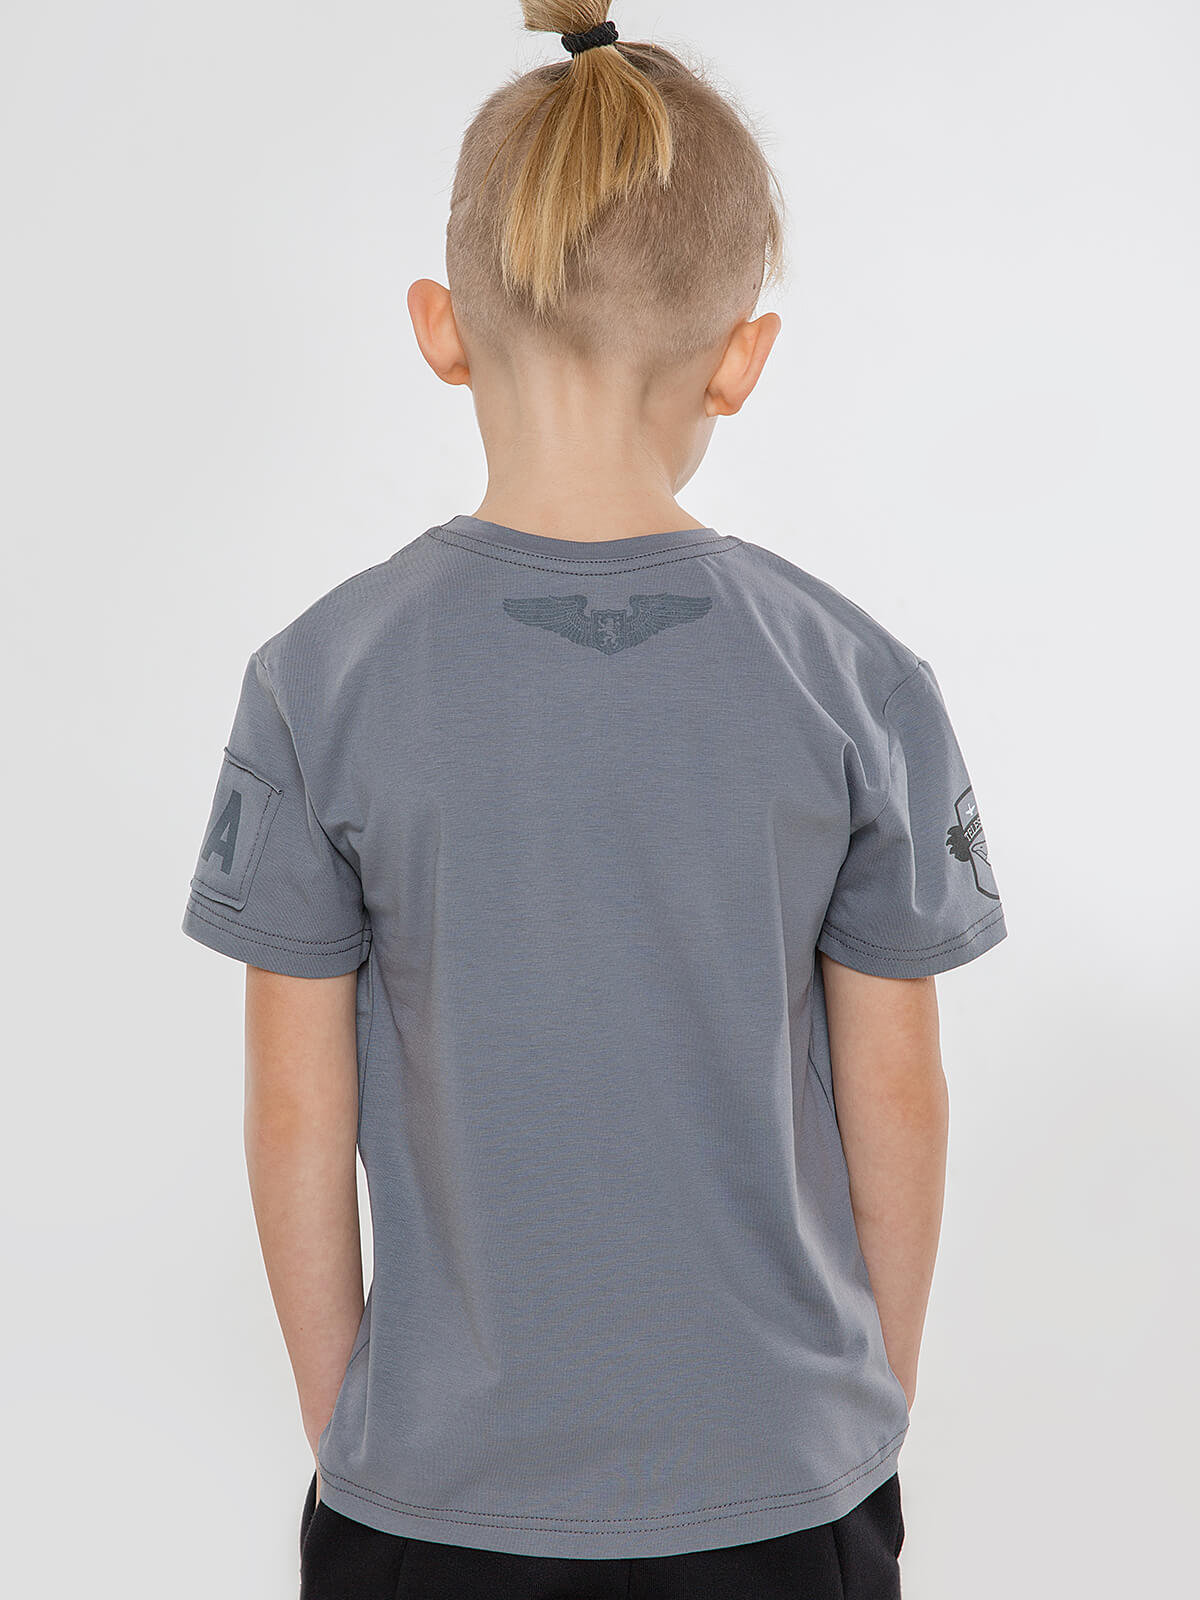 Kids T-Shirt Goose. Color gray.  Technique of prints applied: silkscreen printing.